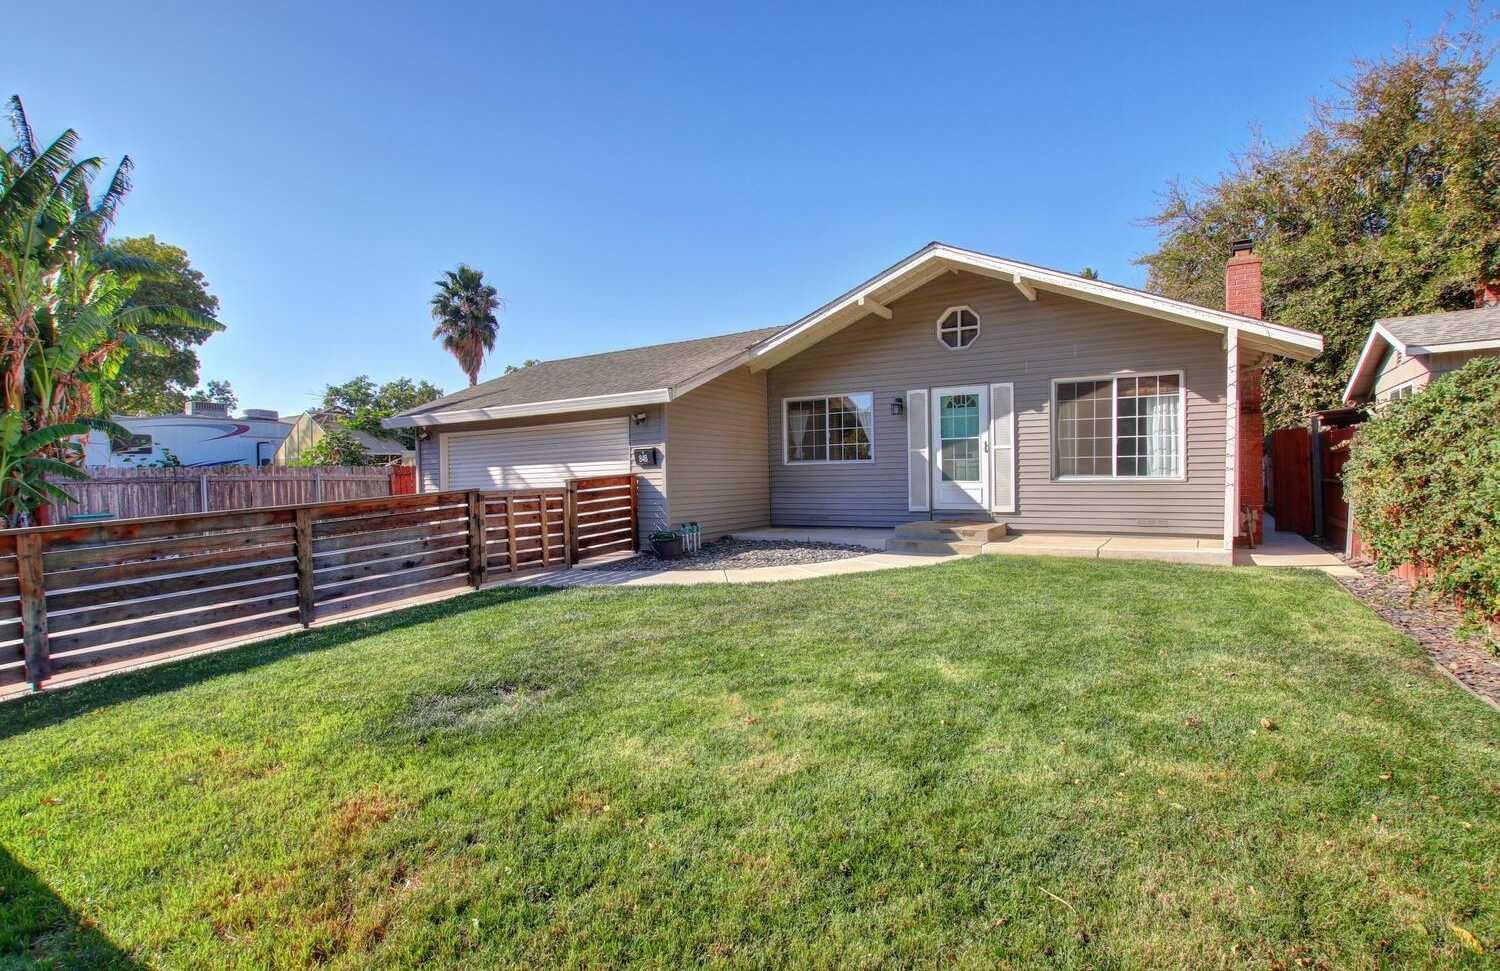 $375,000 - 3Br/2Ba -  for Sale in West Sacramento